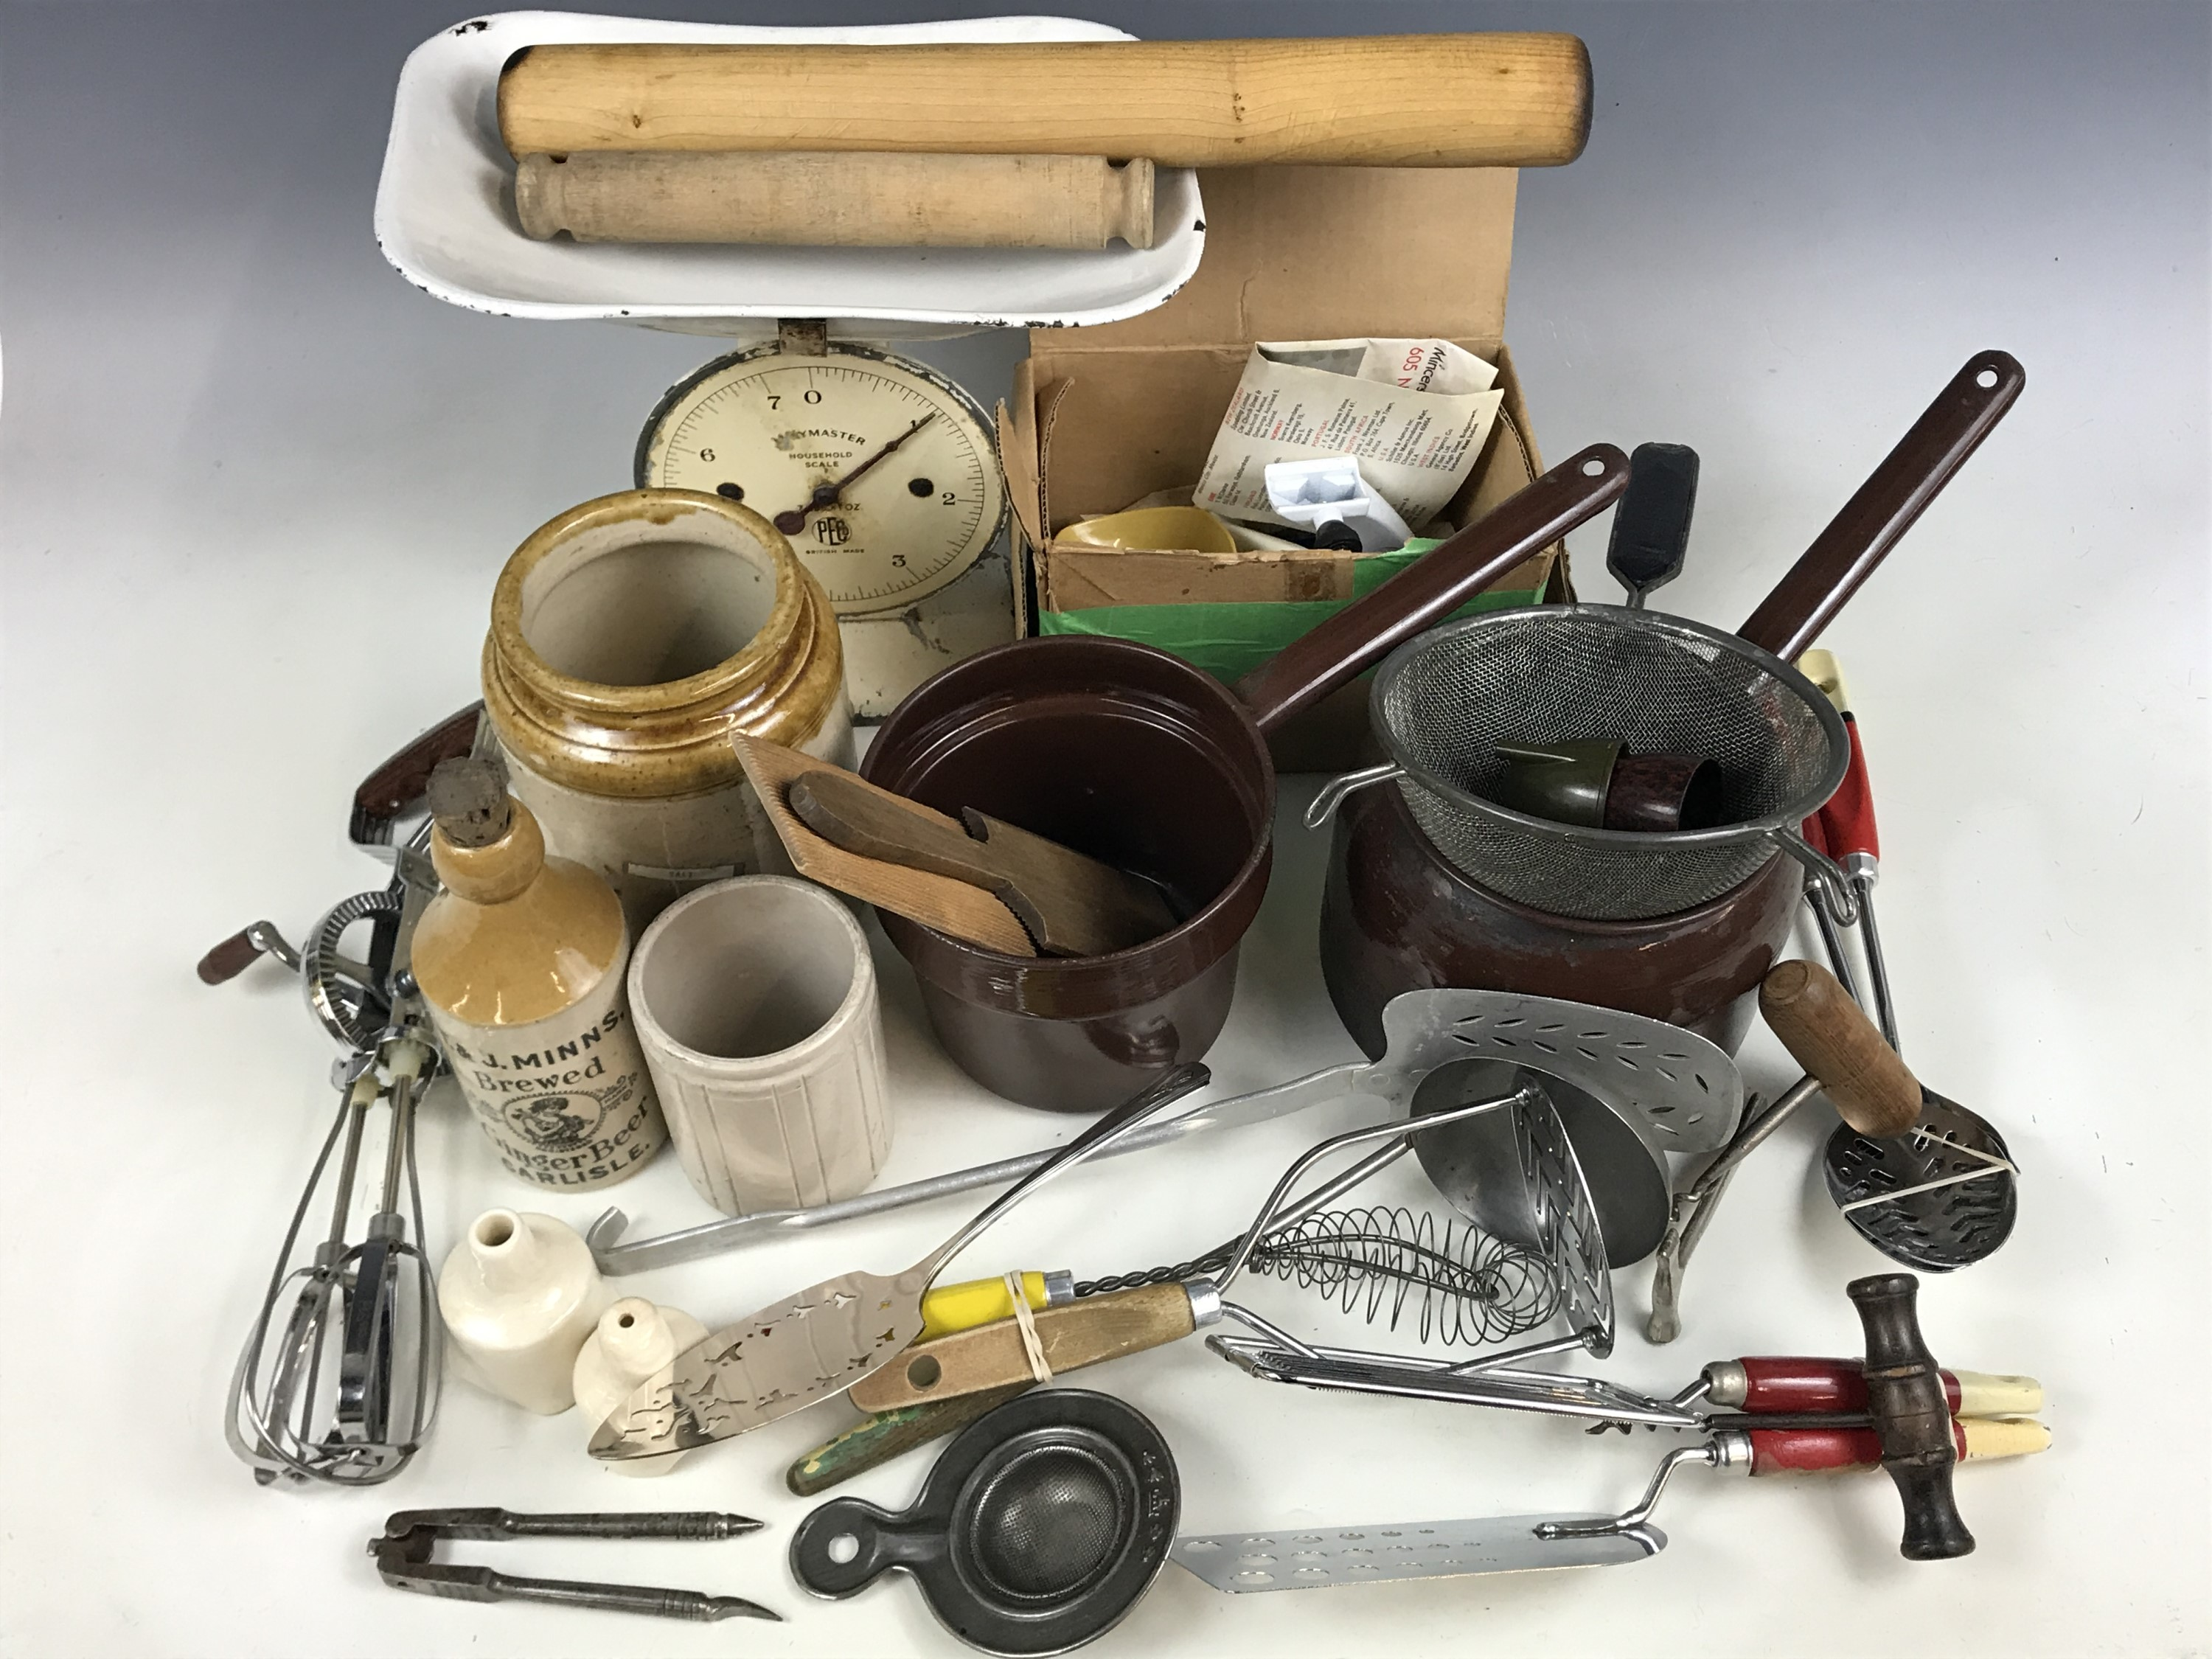 Lot 33 - Items of vintage kitchenalia, including a set of counter-top scales, a Judge Ware enamelled bain